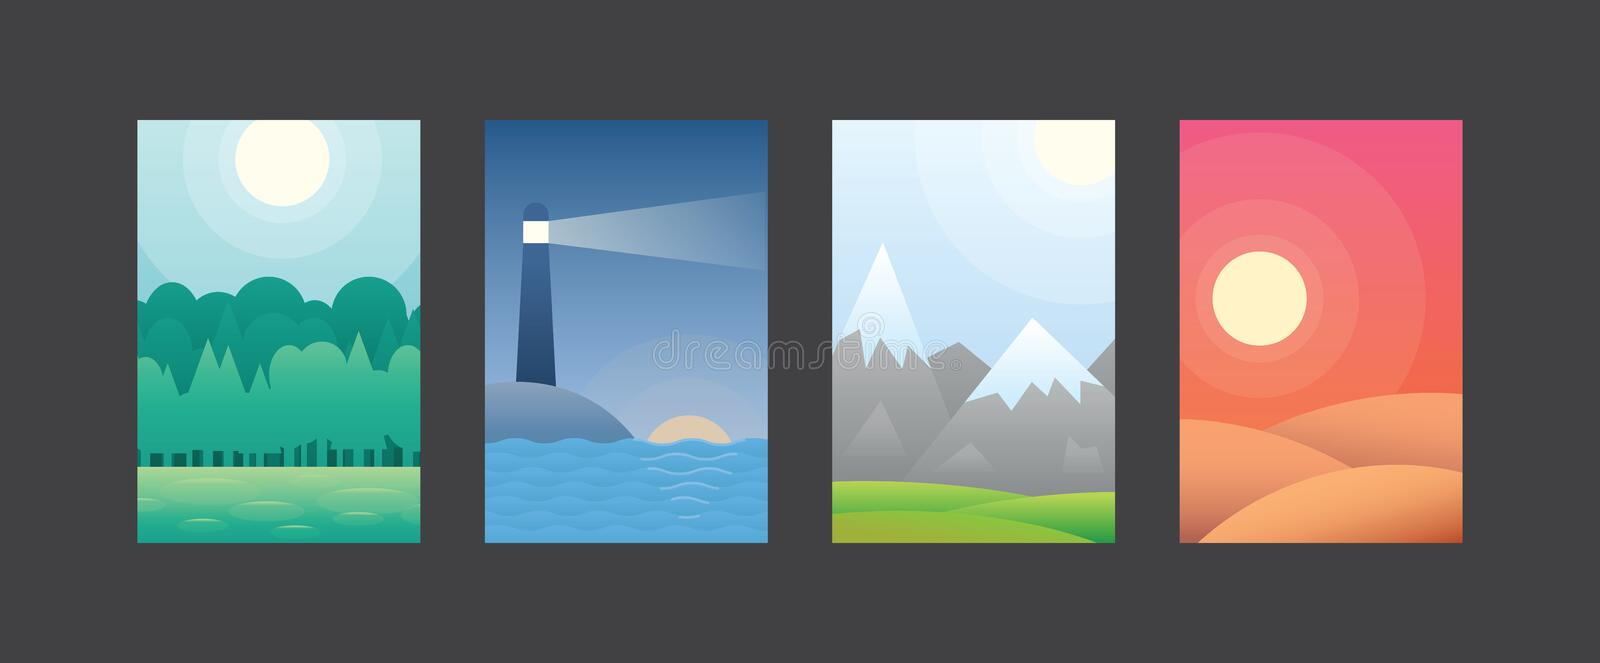 Green forest, lighthouse in sea, mountain peaks snow and sandy desert vector royalty free illustration